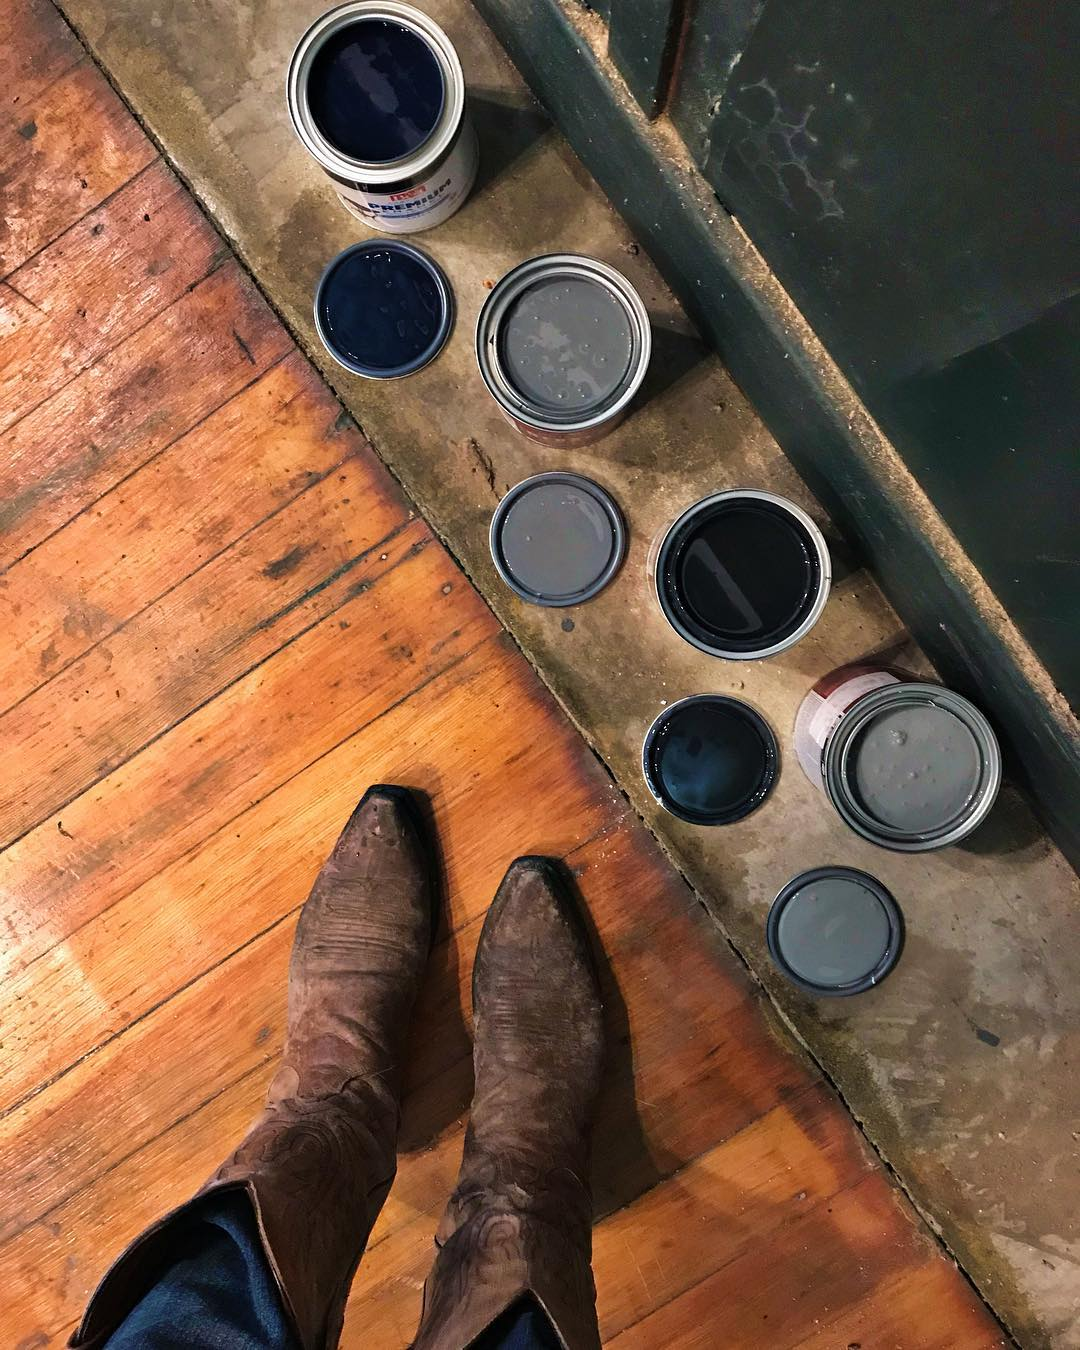 Paint choices... black or gray, black or gray 🤔⚫️🔘🖤%0A#mysisterwillbesoproud #norainbowshere #paintitallblack #fivemarysprojects #thisisabigone #fivemarysburgerhouse #M5.jpg